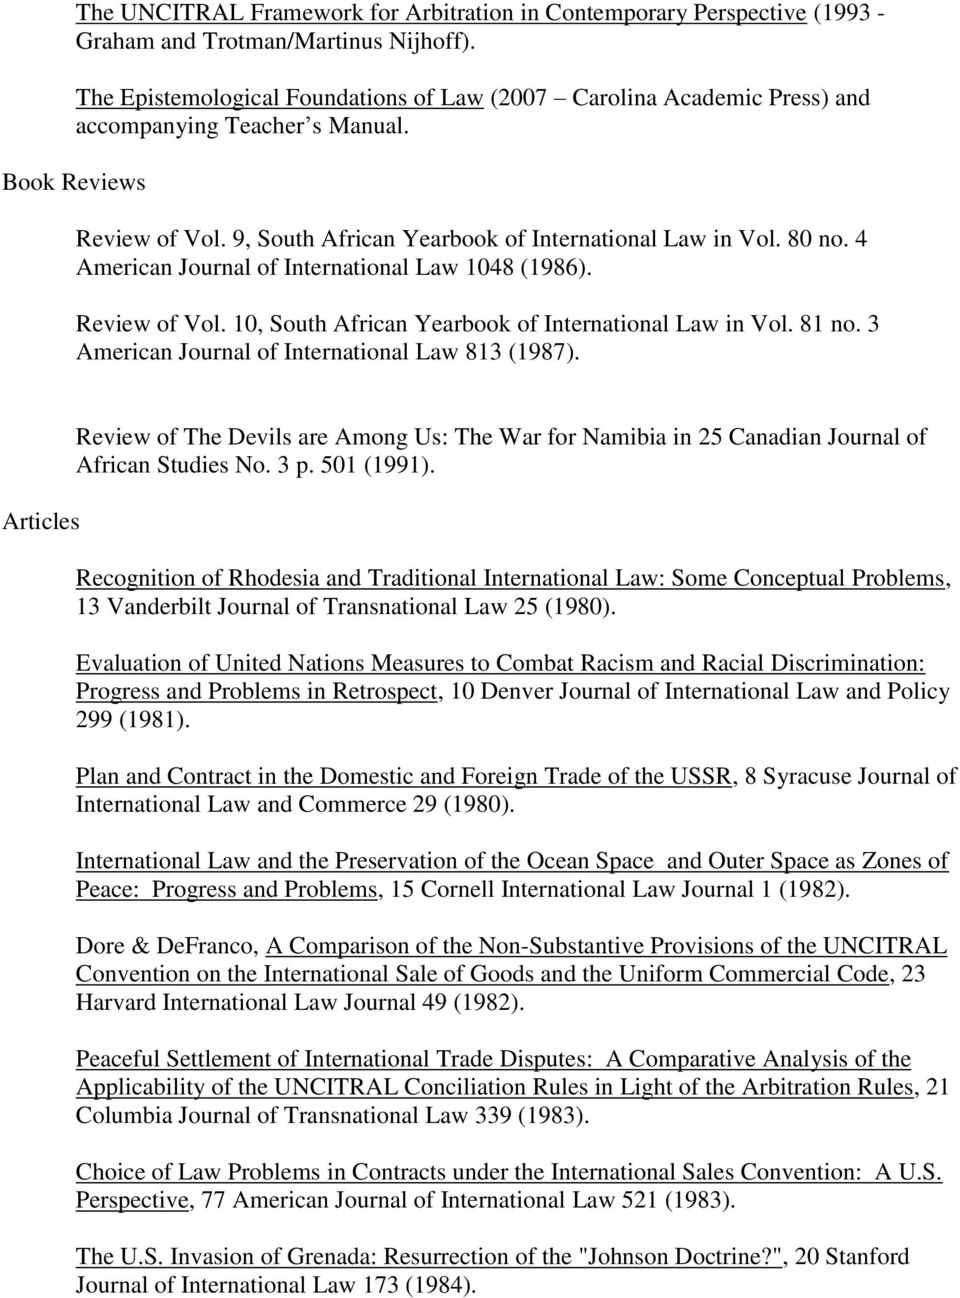 4 American Journal of International Law 1048 (1986). Review of Vol. 10, South African Yearbook of International Law in Vol. 81 no. 3 American Journal of International Law 813 (1987).